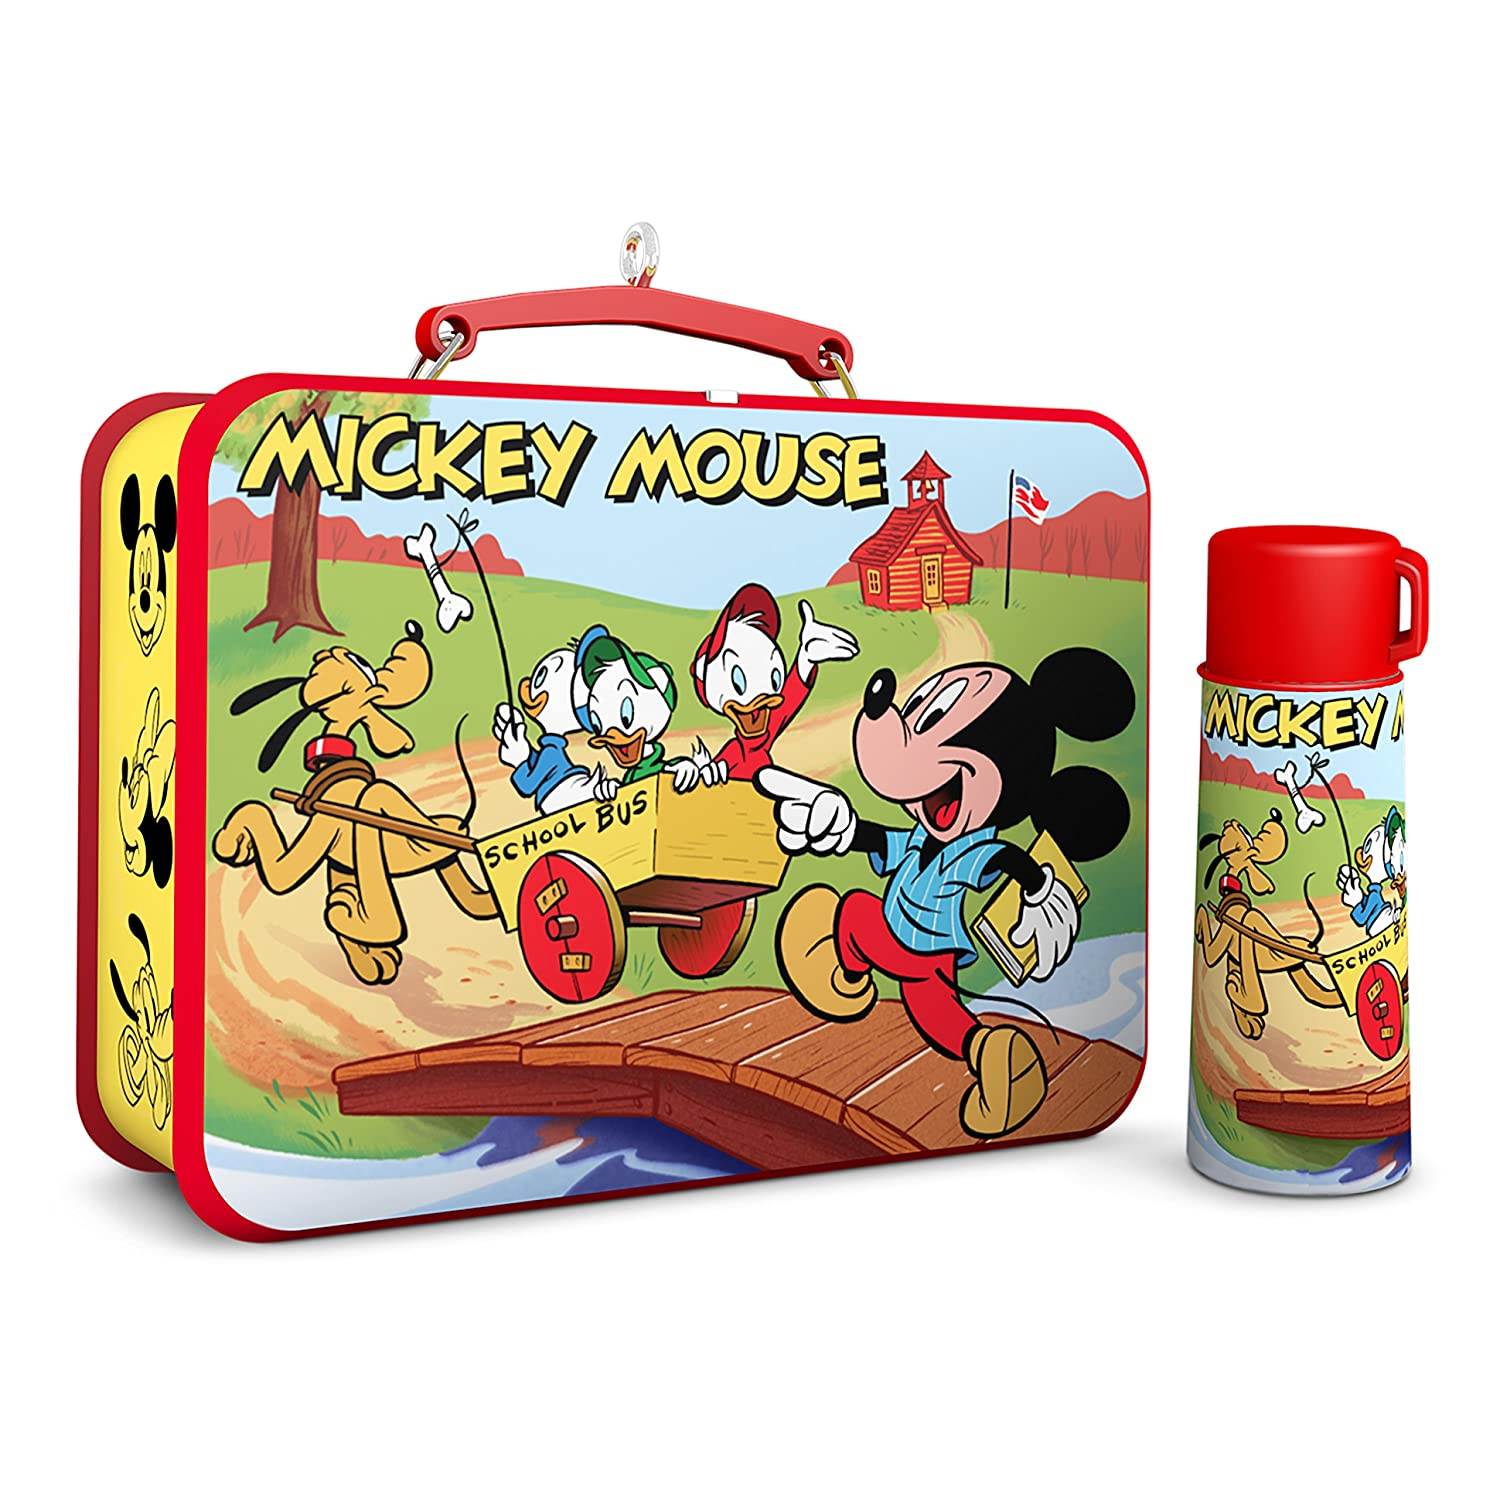 2a057b804fec Hallmark Keepsake 2017 Disney Mickey and Friends Mickey Mouse Lunchbox and  Thermos Christmas Ornaments, Set of 2